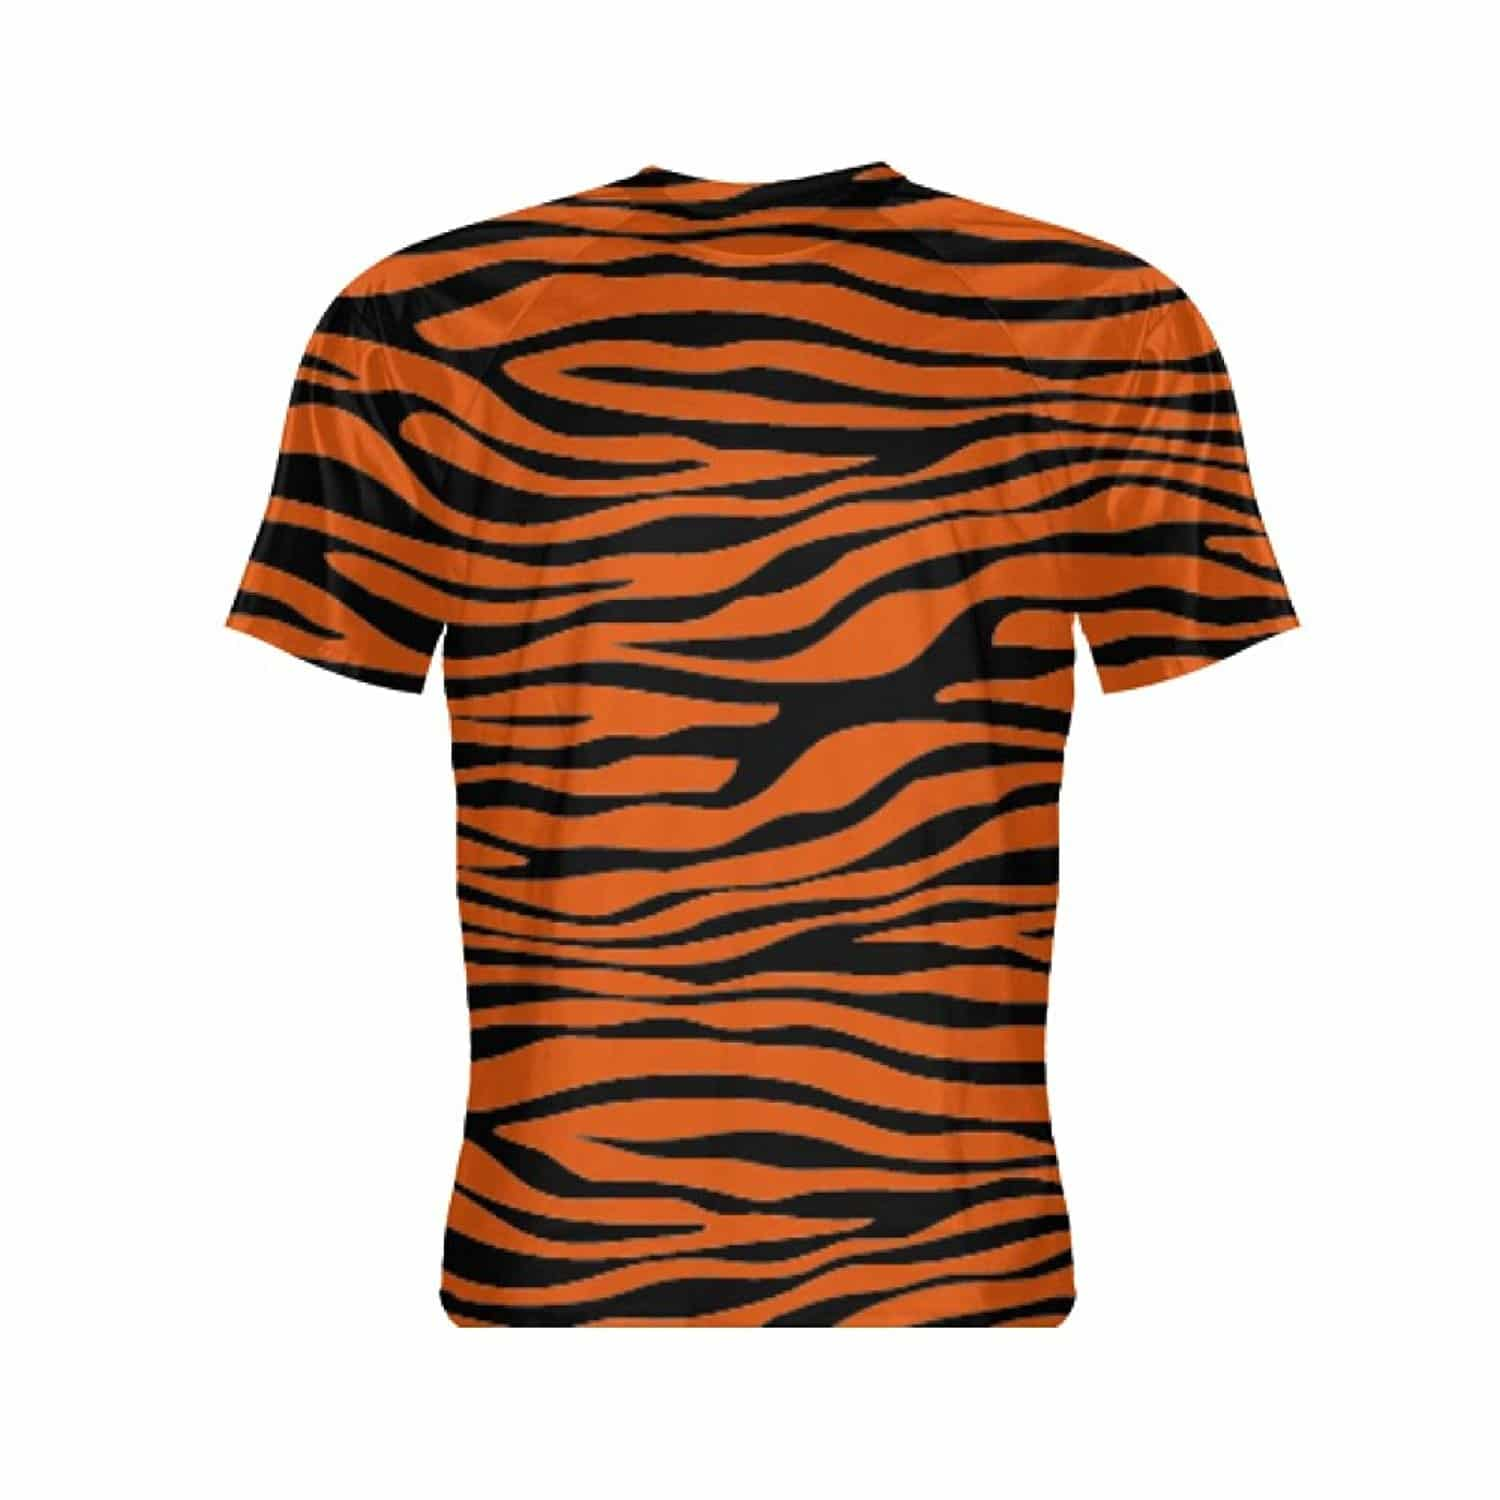 c4931ceff Tiger Print Short Sleeve Shirt - Tiger Striped Shirt - Shirt With Tiger  Print